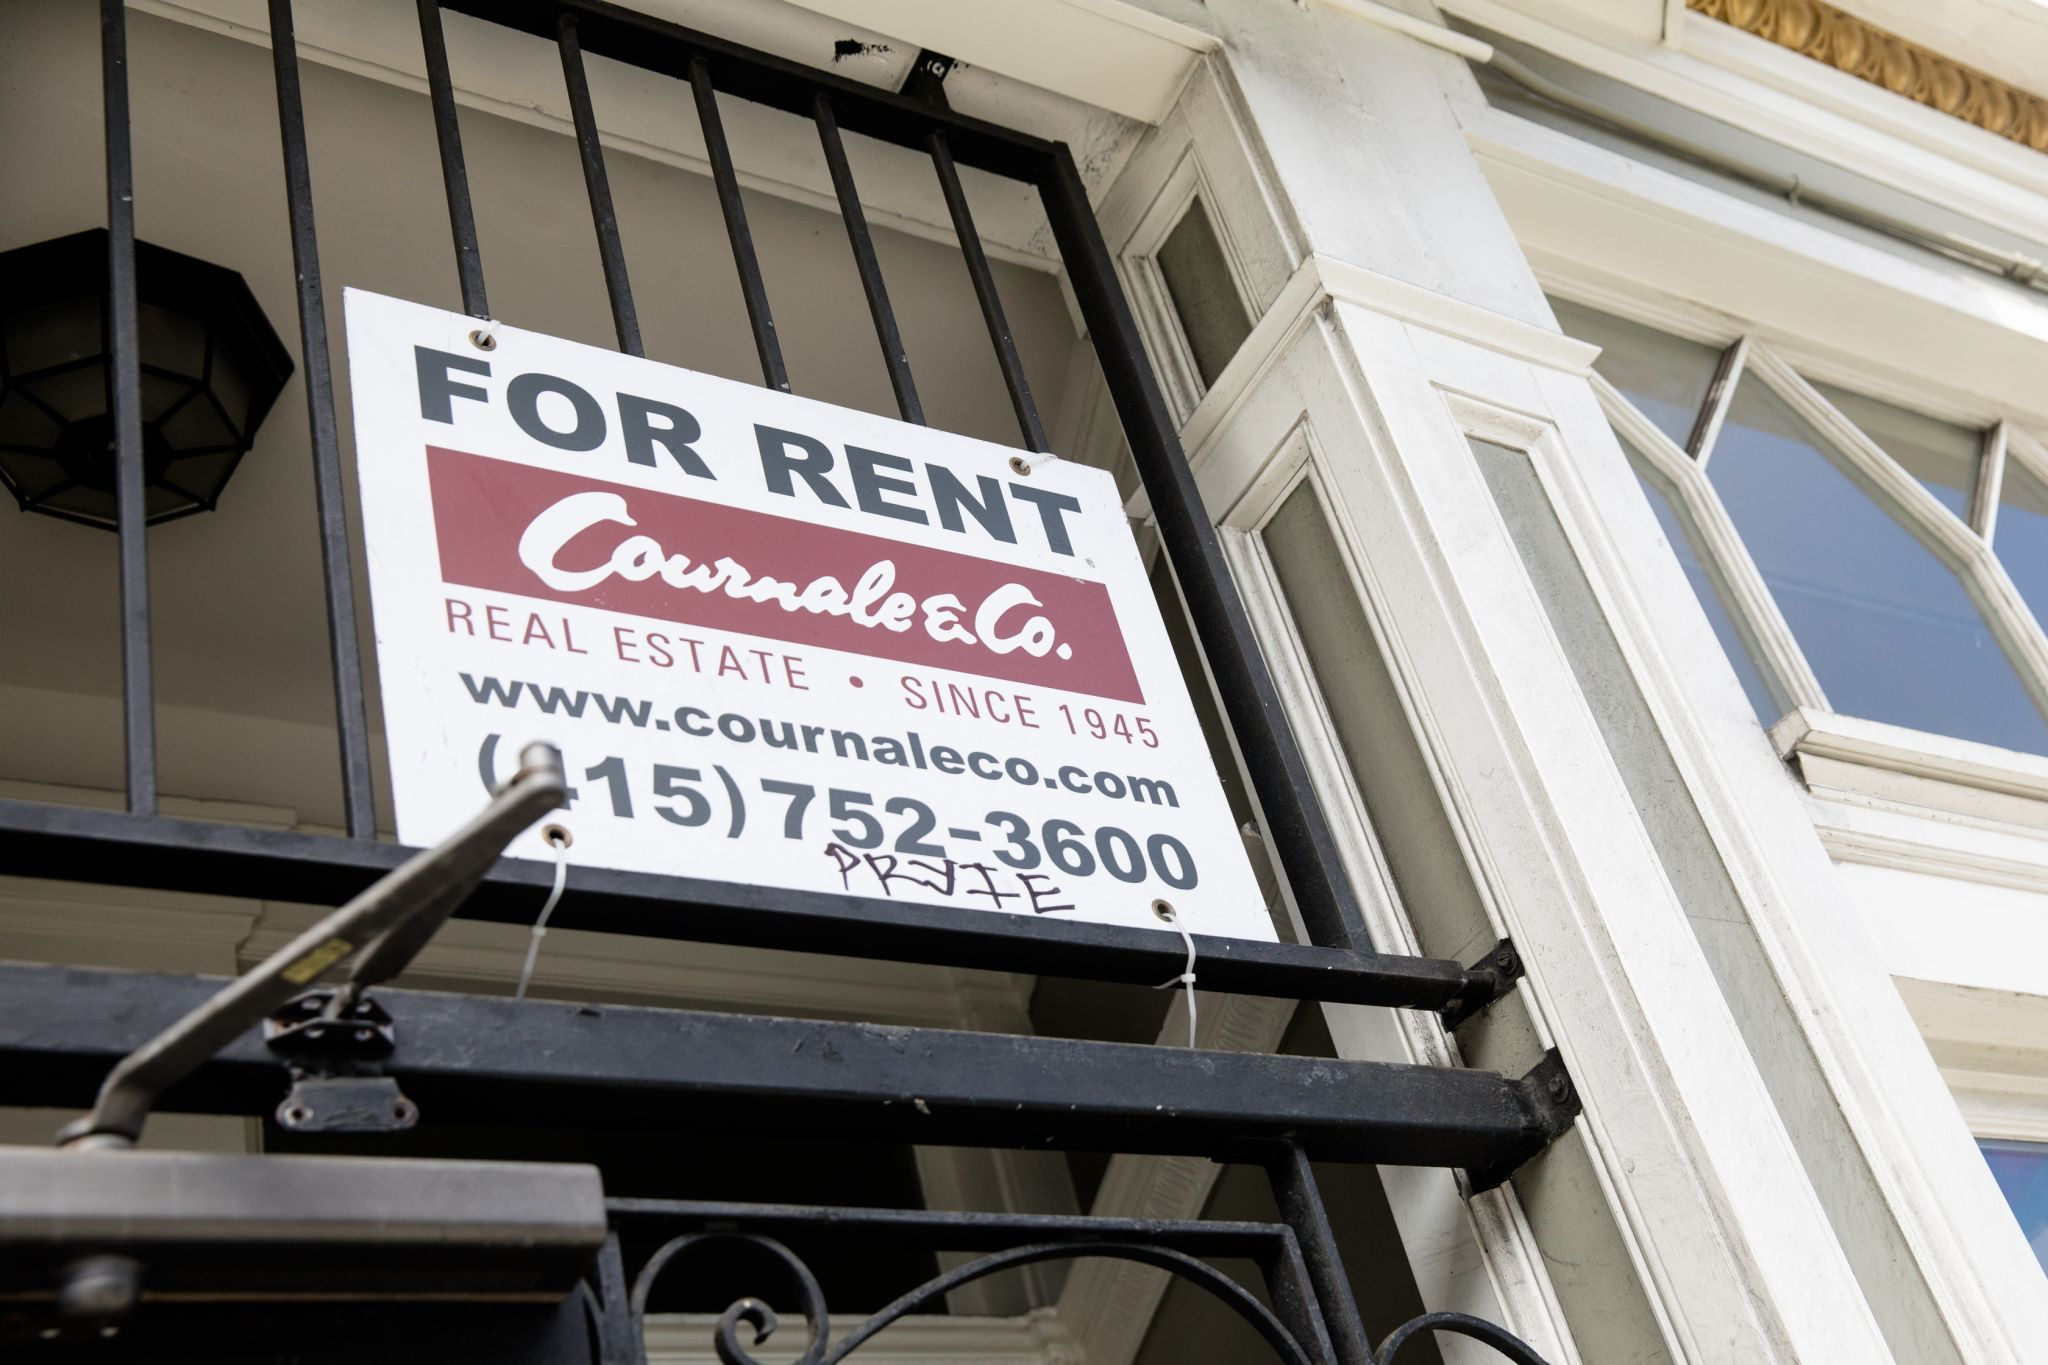 SF tech investor offering apartment leases as NFTs